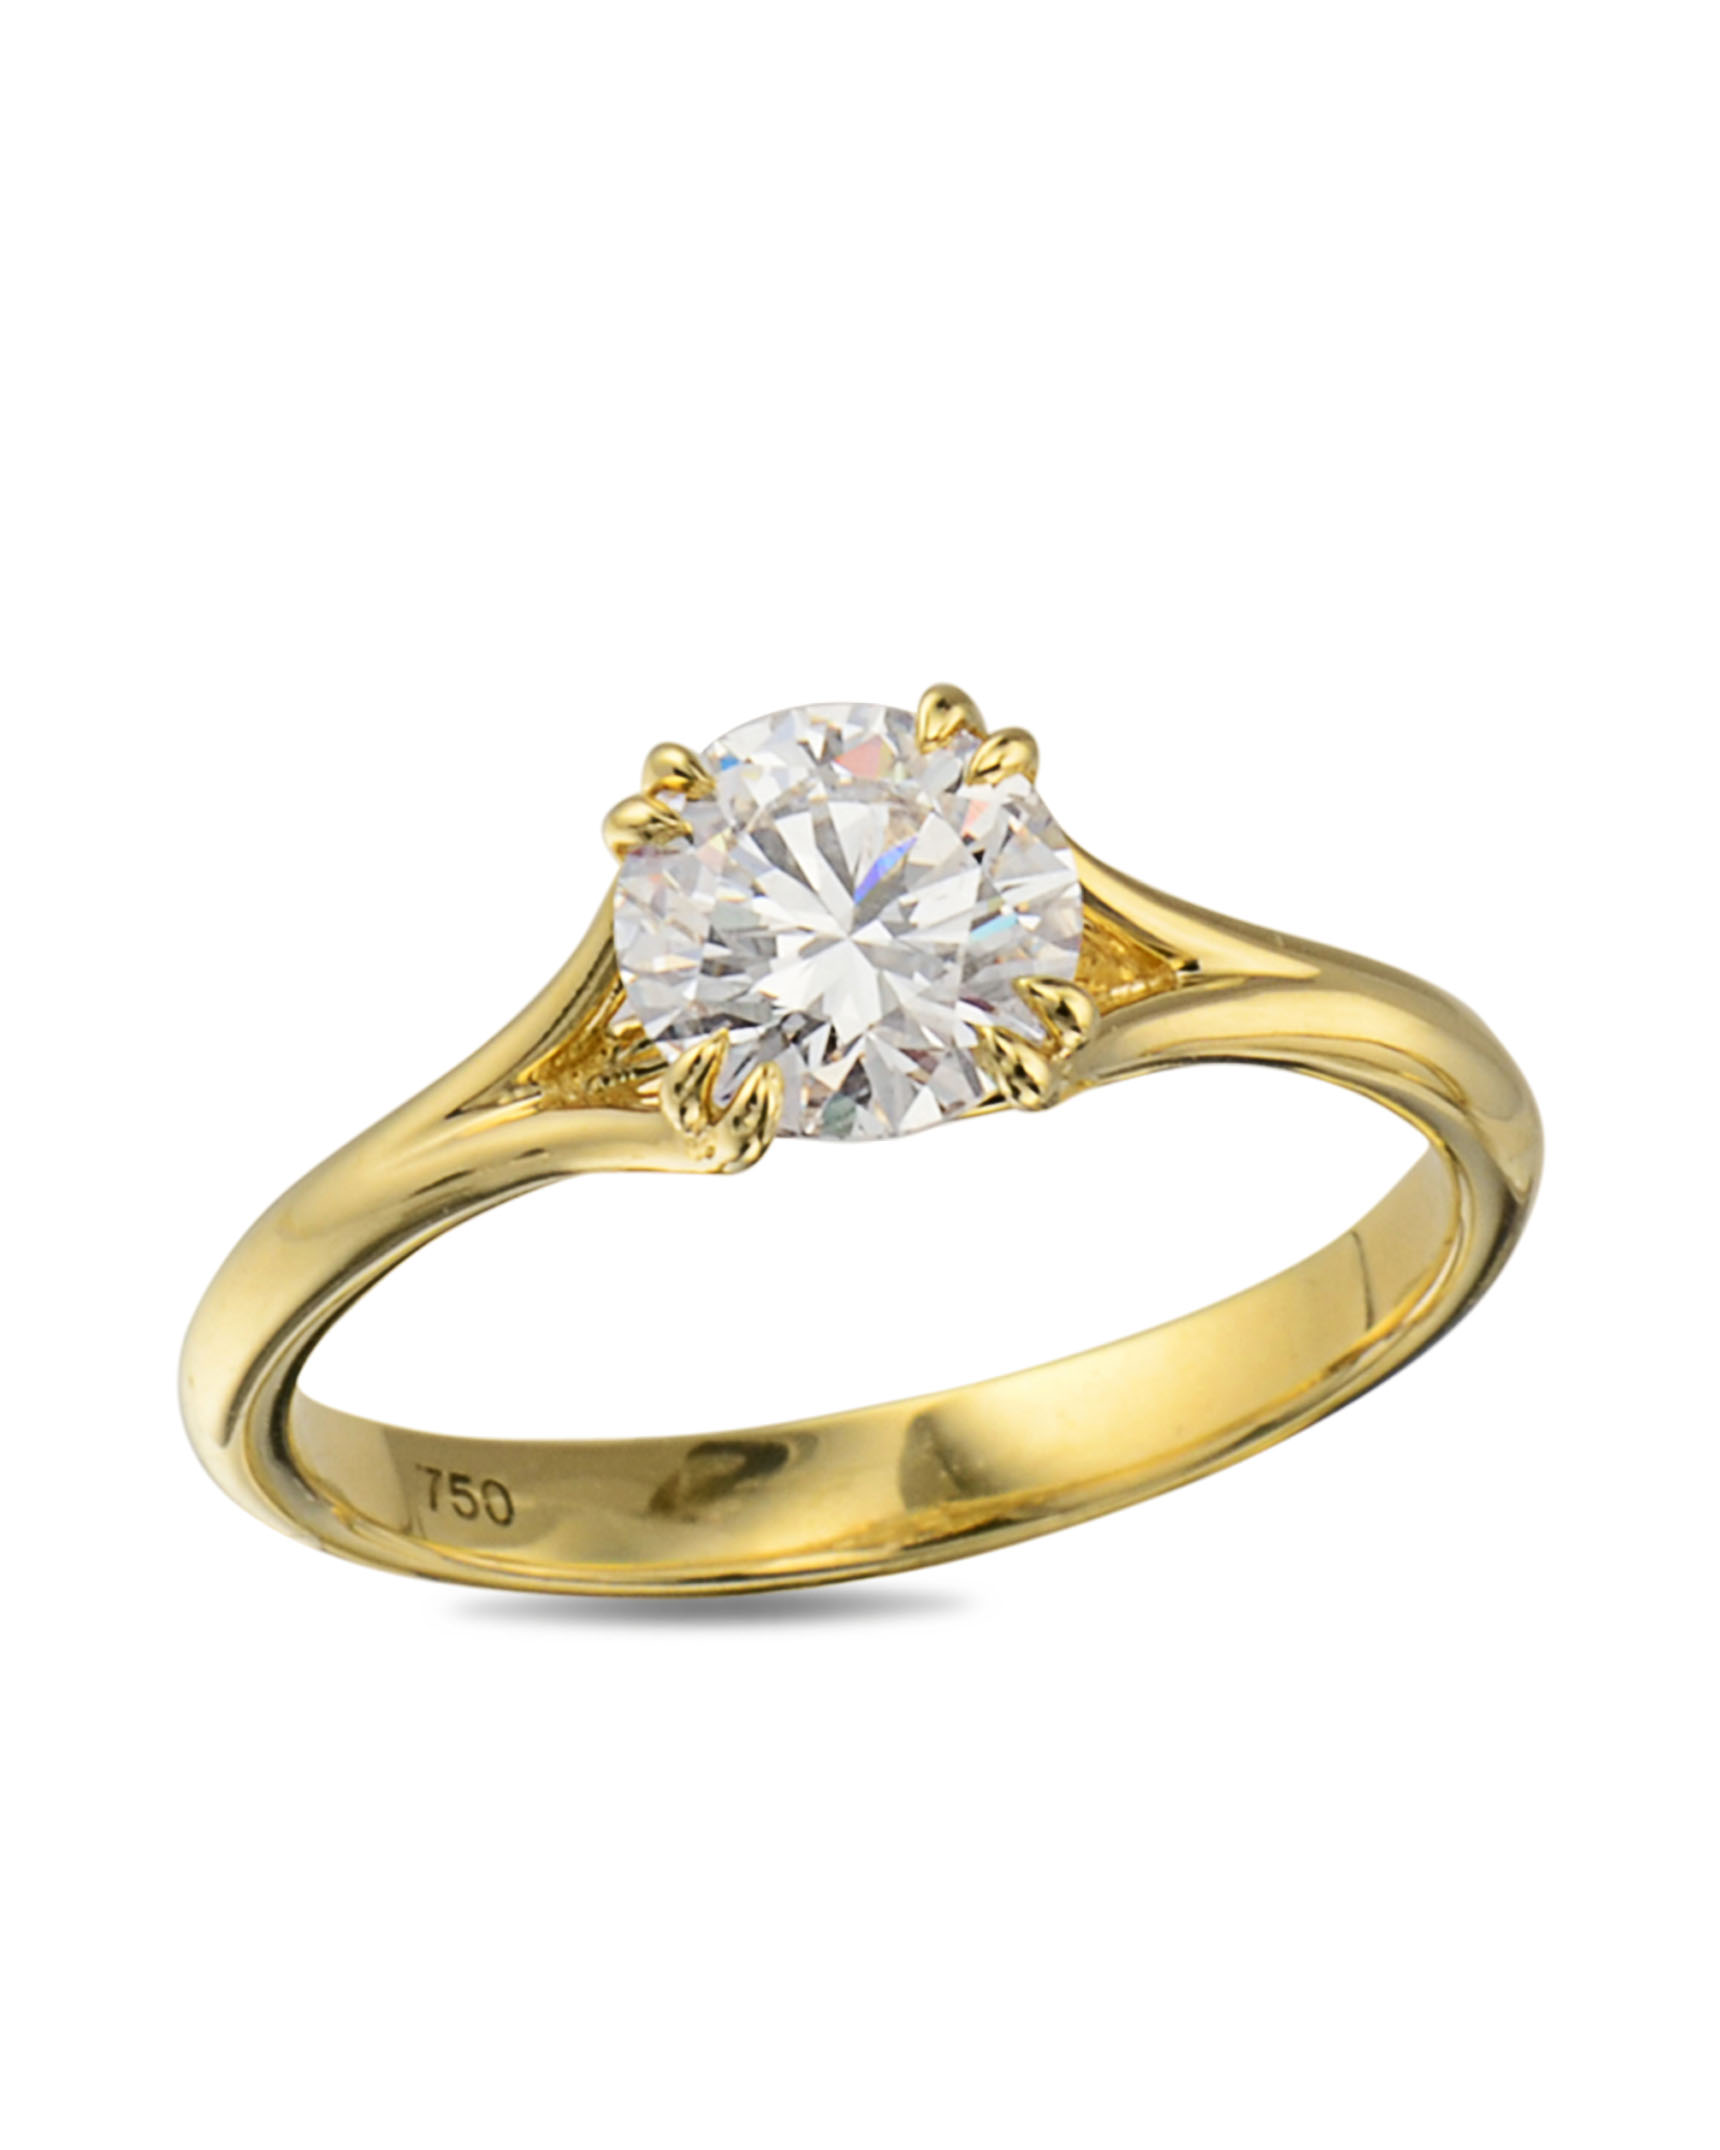 gold ring cathedral prong designs orange micro diamond ct engagement white shop rings jewelry store